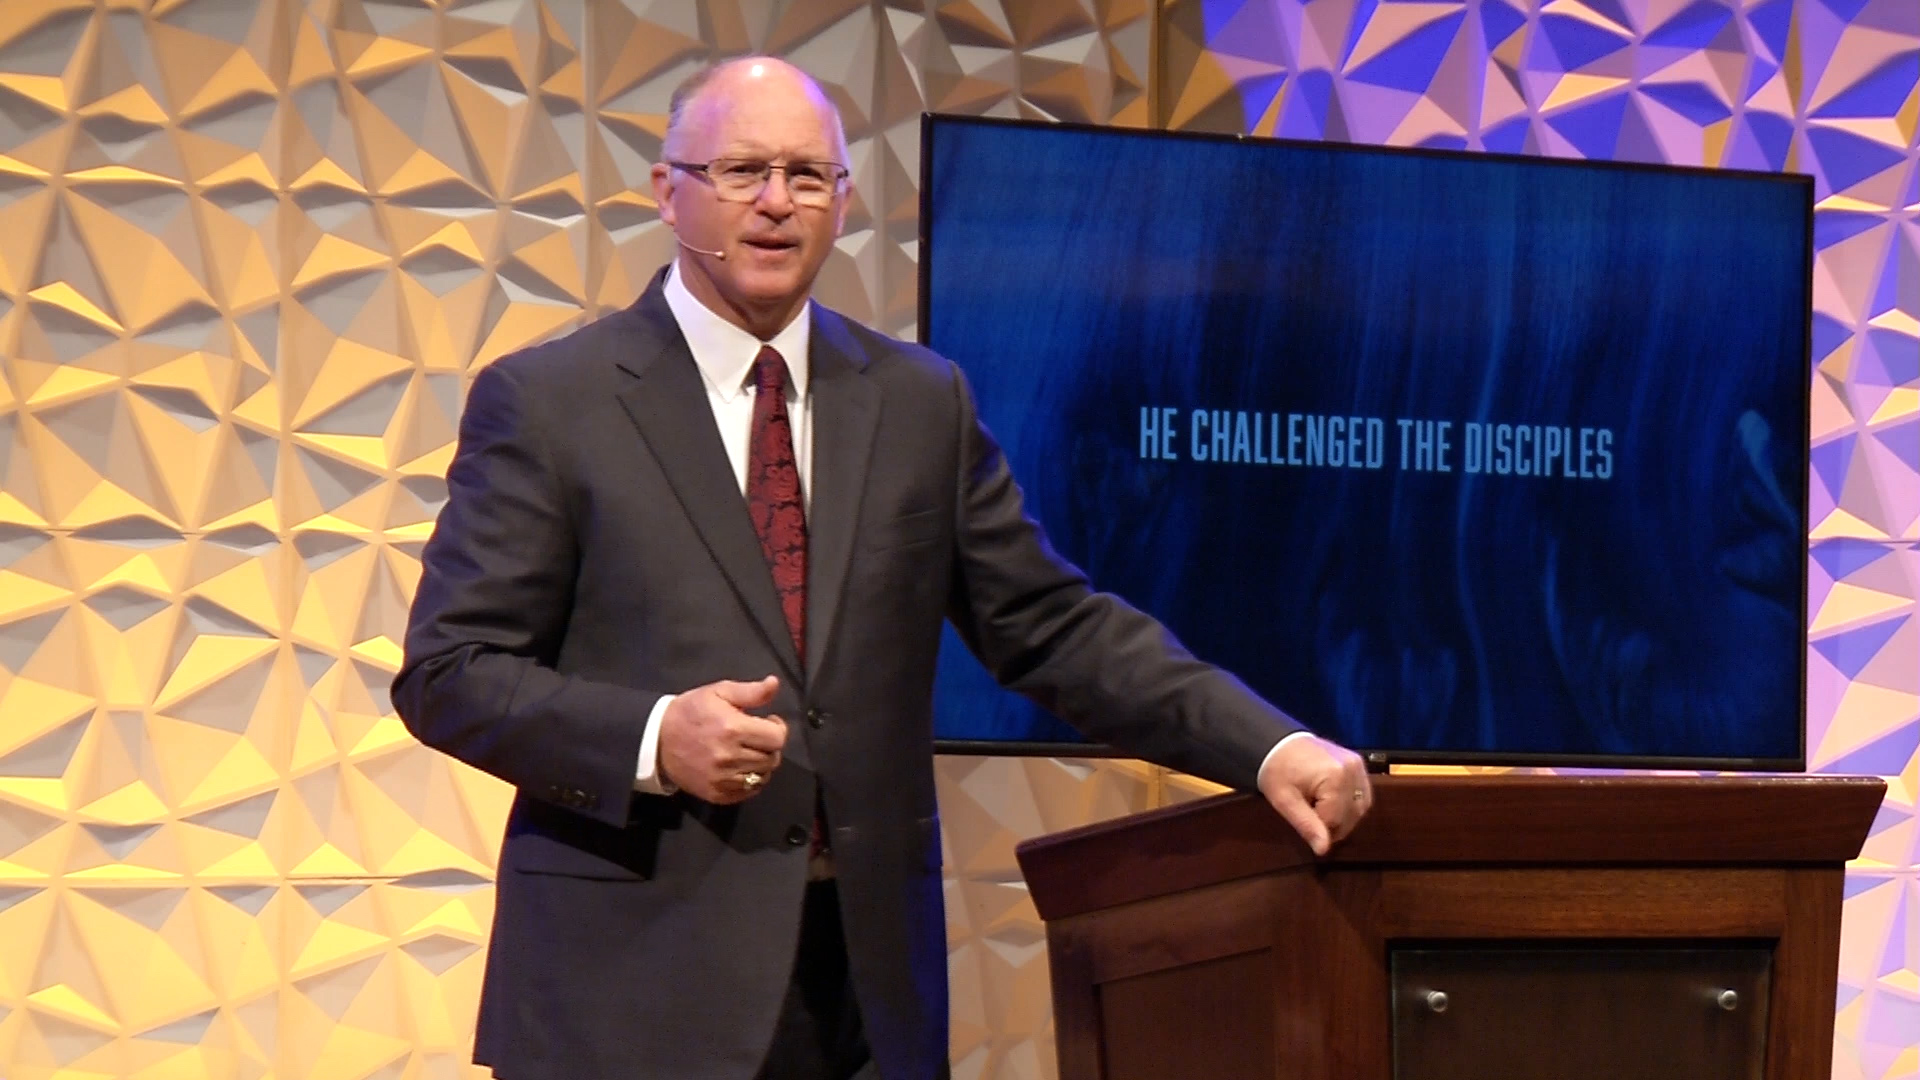 Pastor Paul Chappell: Consider His Presence